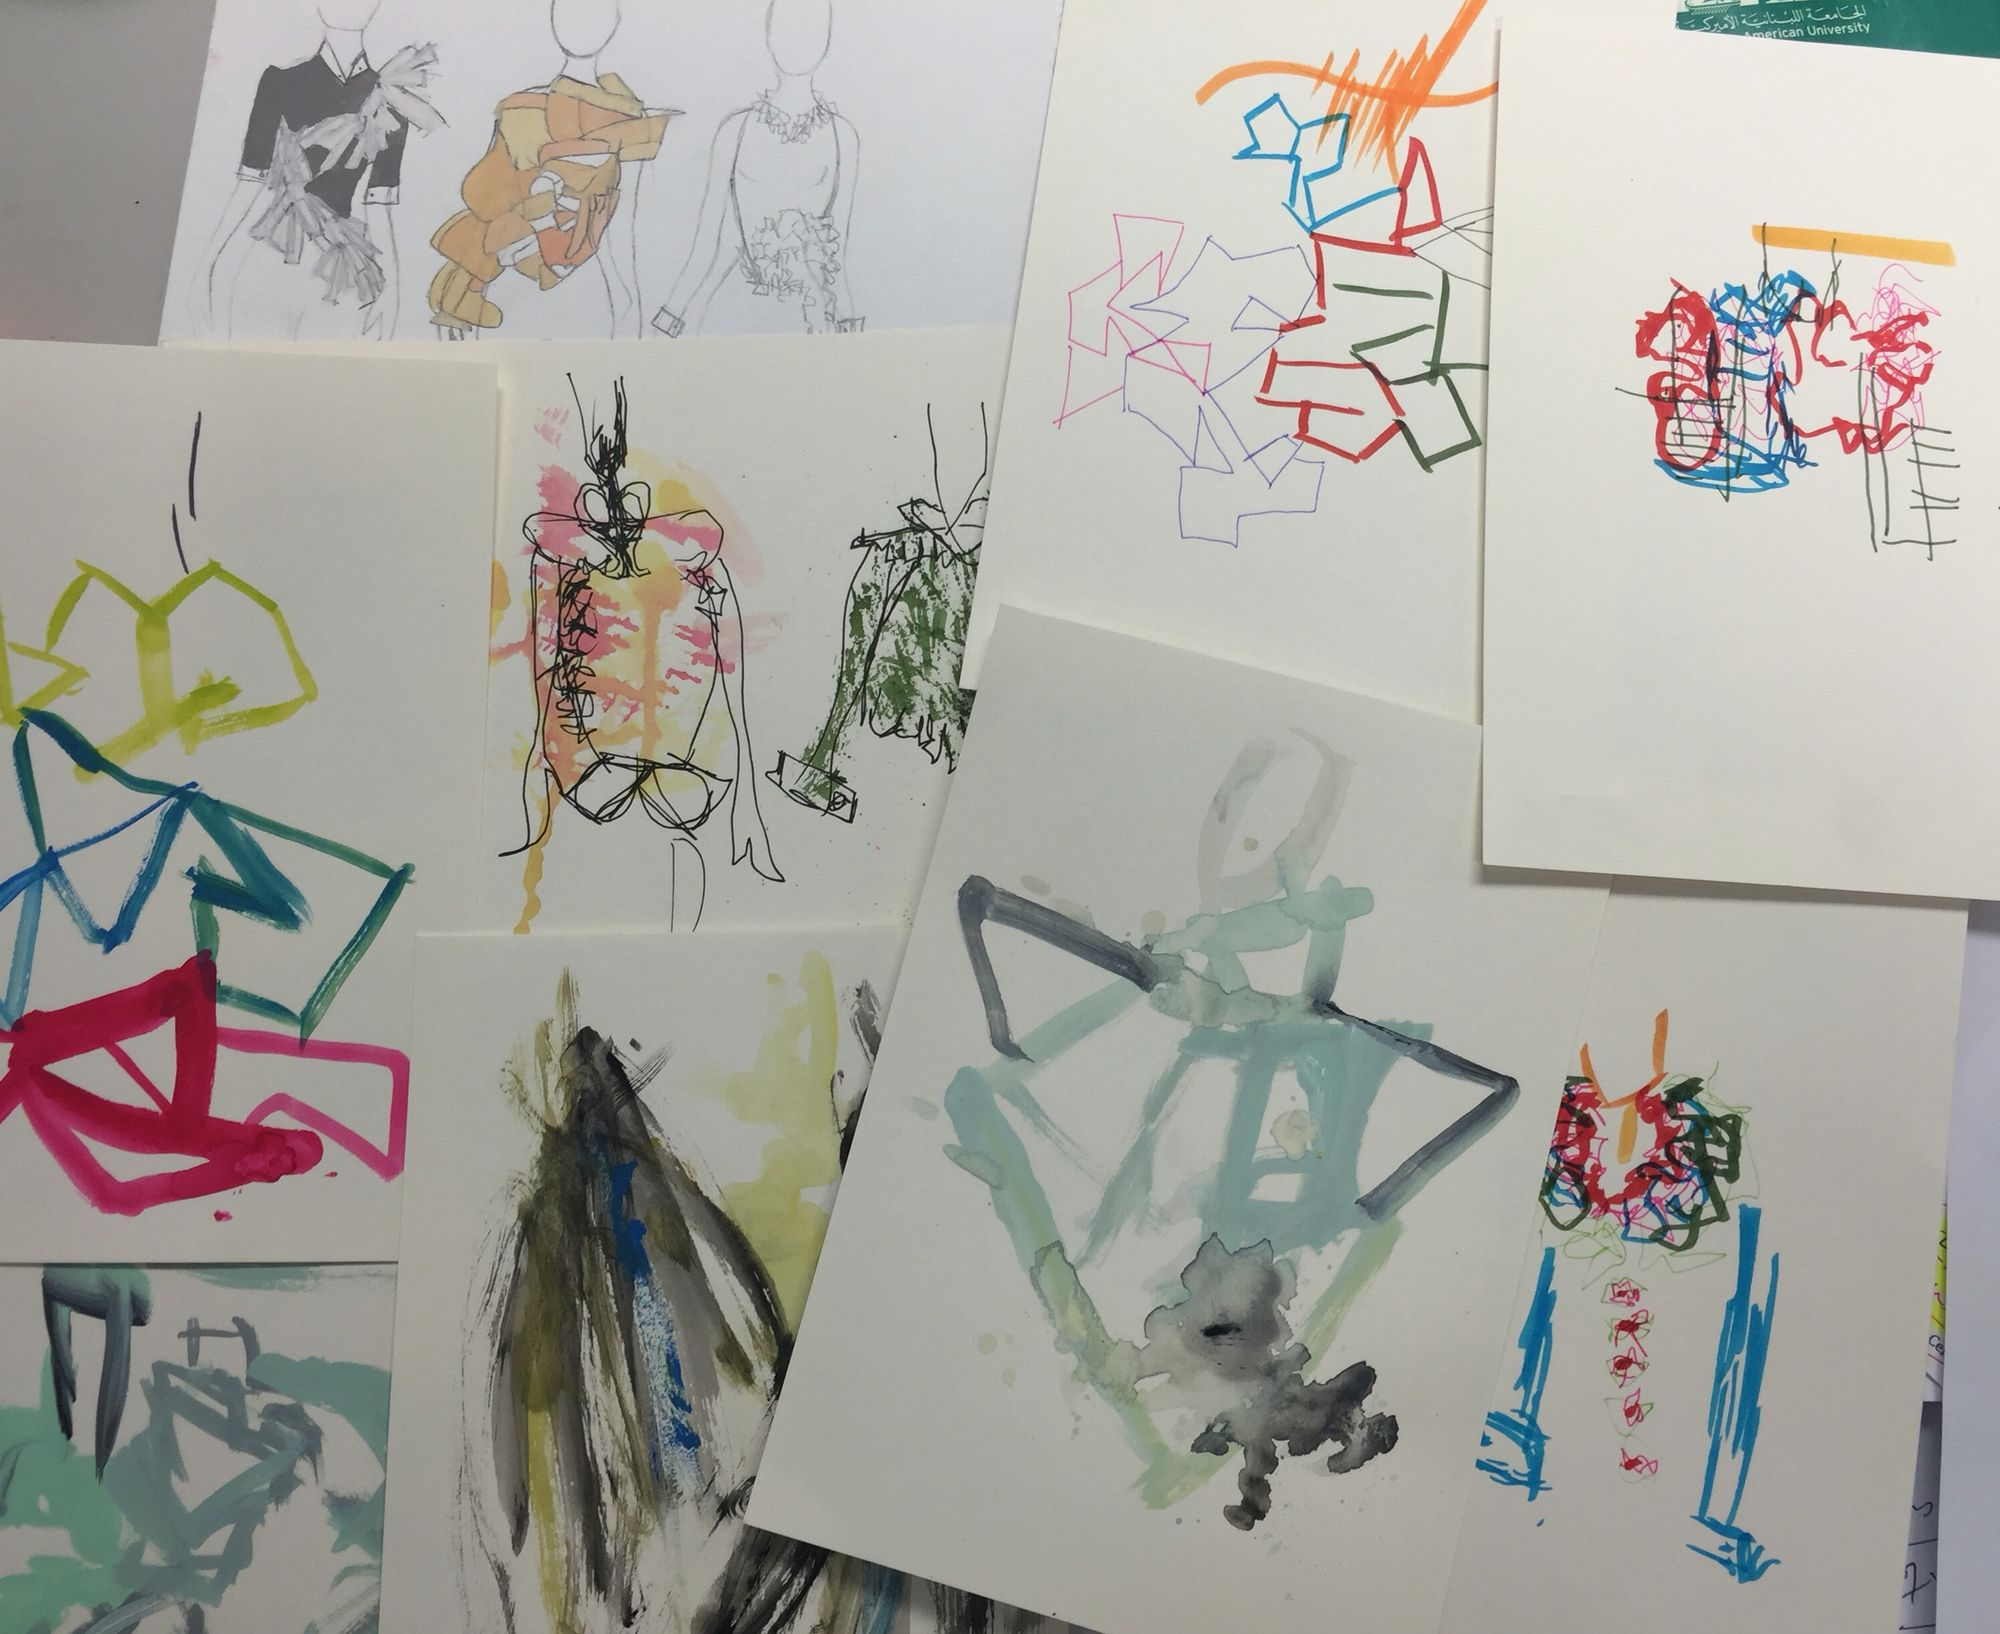 Semester I student, Diala,has made the connection between the experimental drawing exercises and the design process- namely that design is an open process. Great to see many drawing styles- yay! The system works.